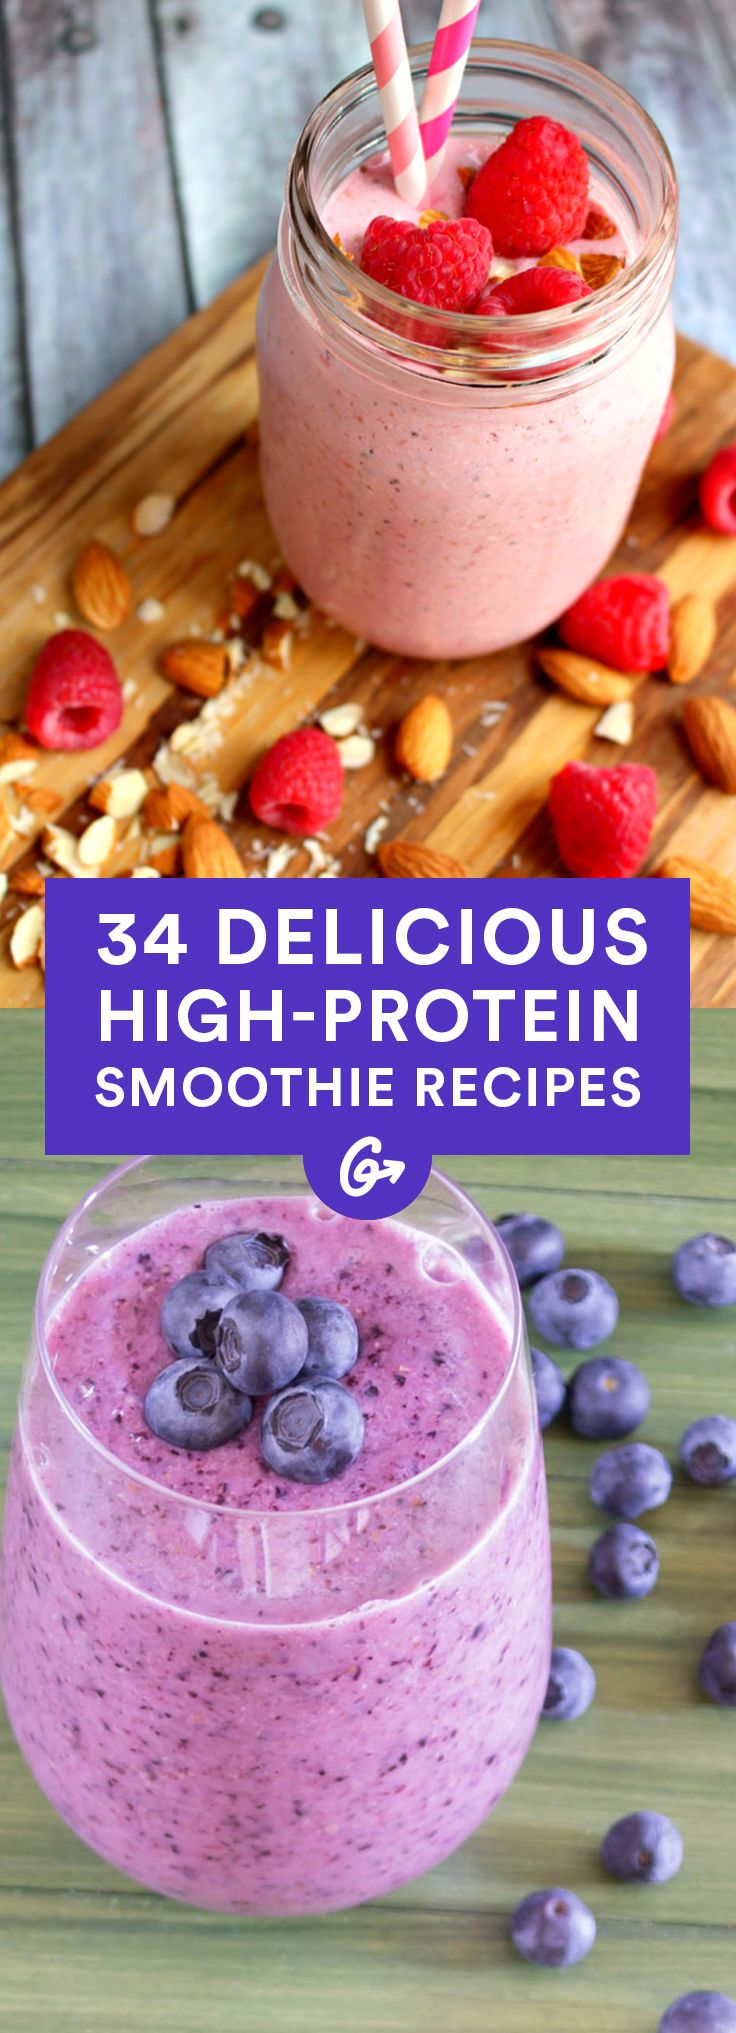 34 High-Protein Smoothie Recipes That Are Easy to Make ...